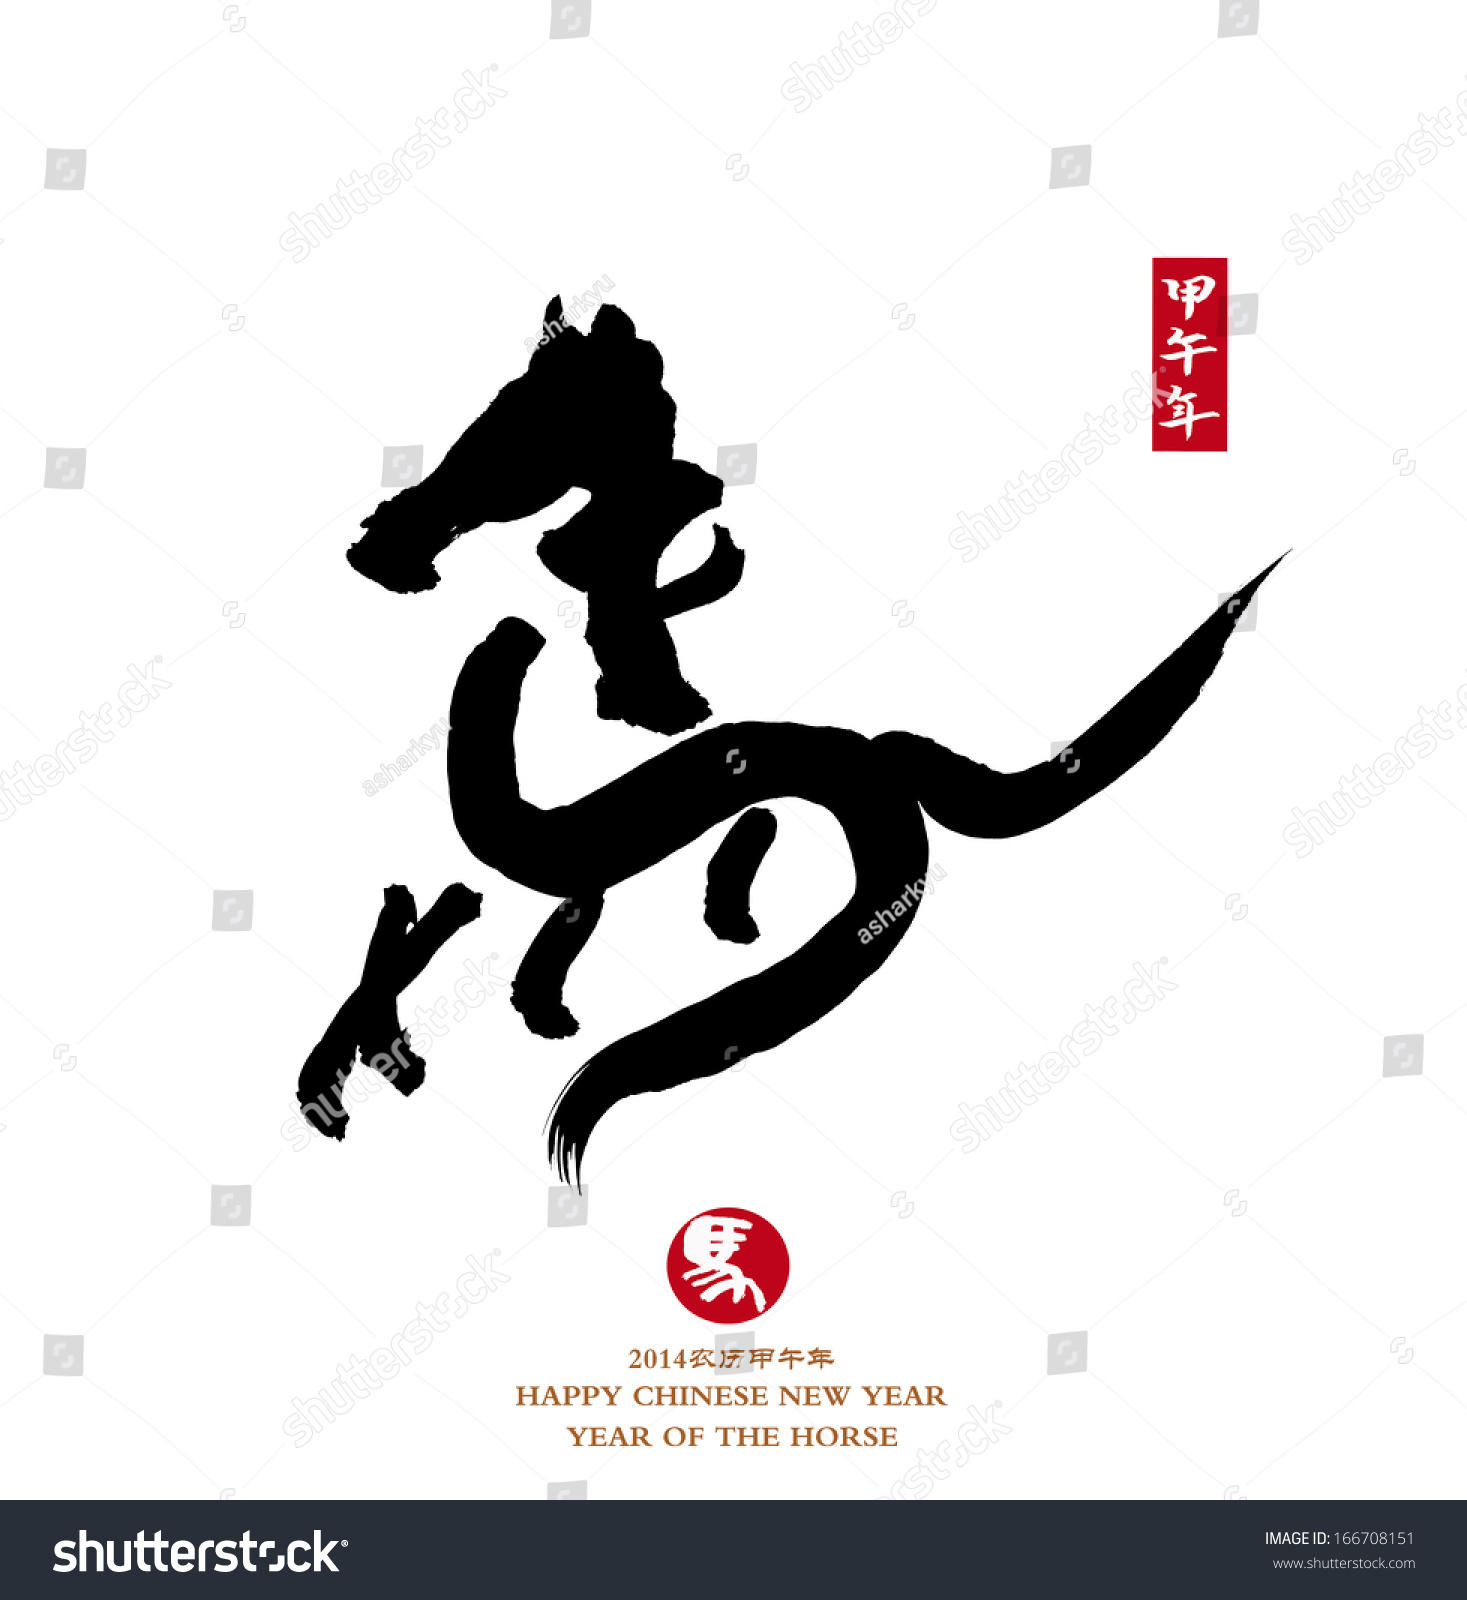 2014 year horsechinese calligraphy word horse stock illustration 2014 is year of the horsechinese calligraphy word for horse biocorpaavc